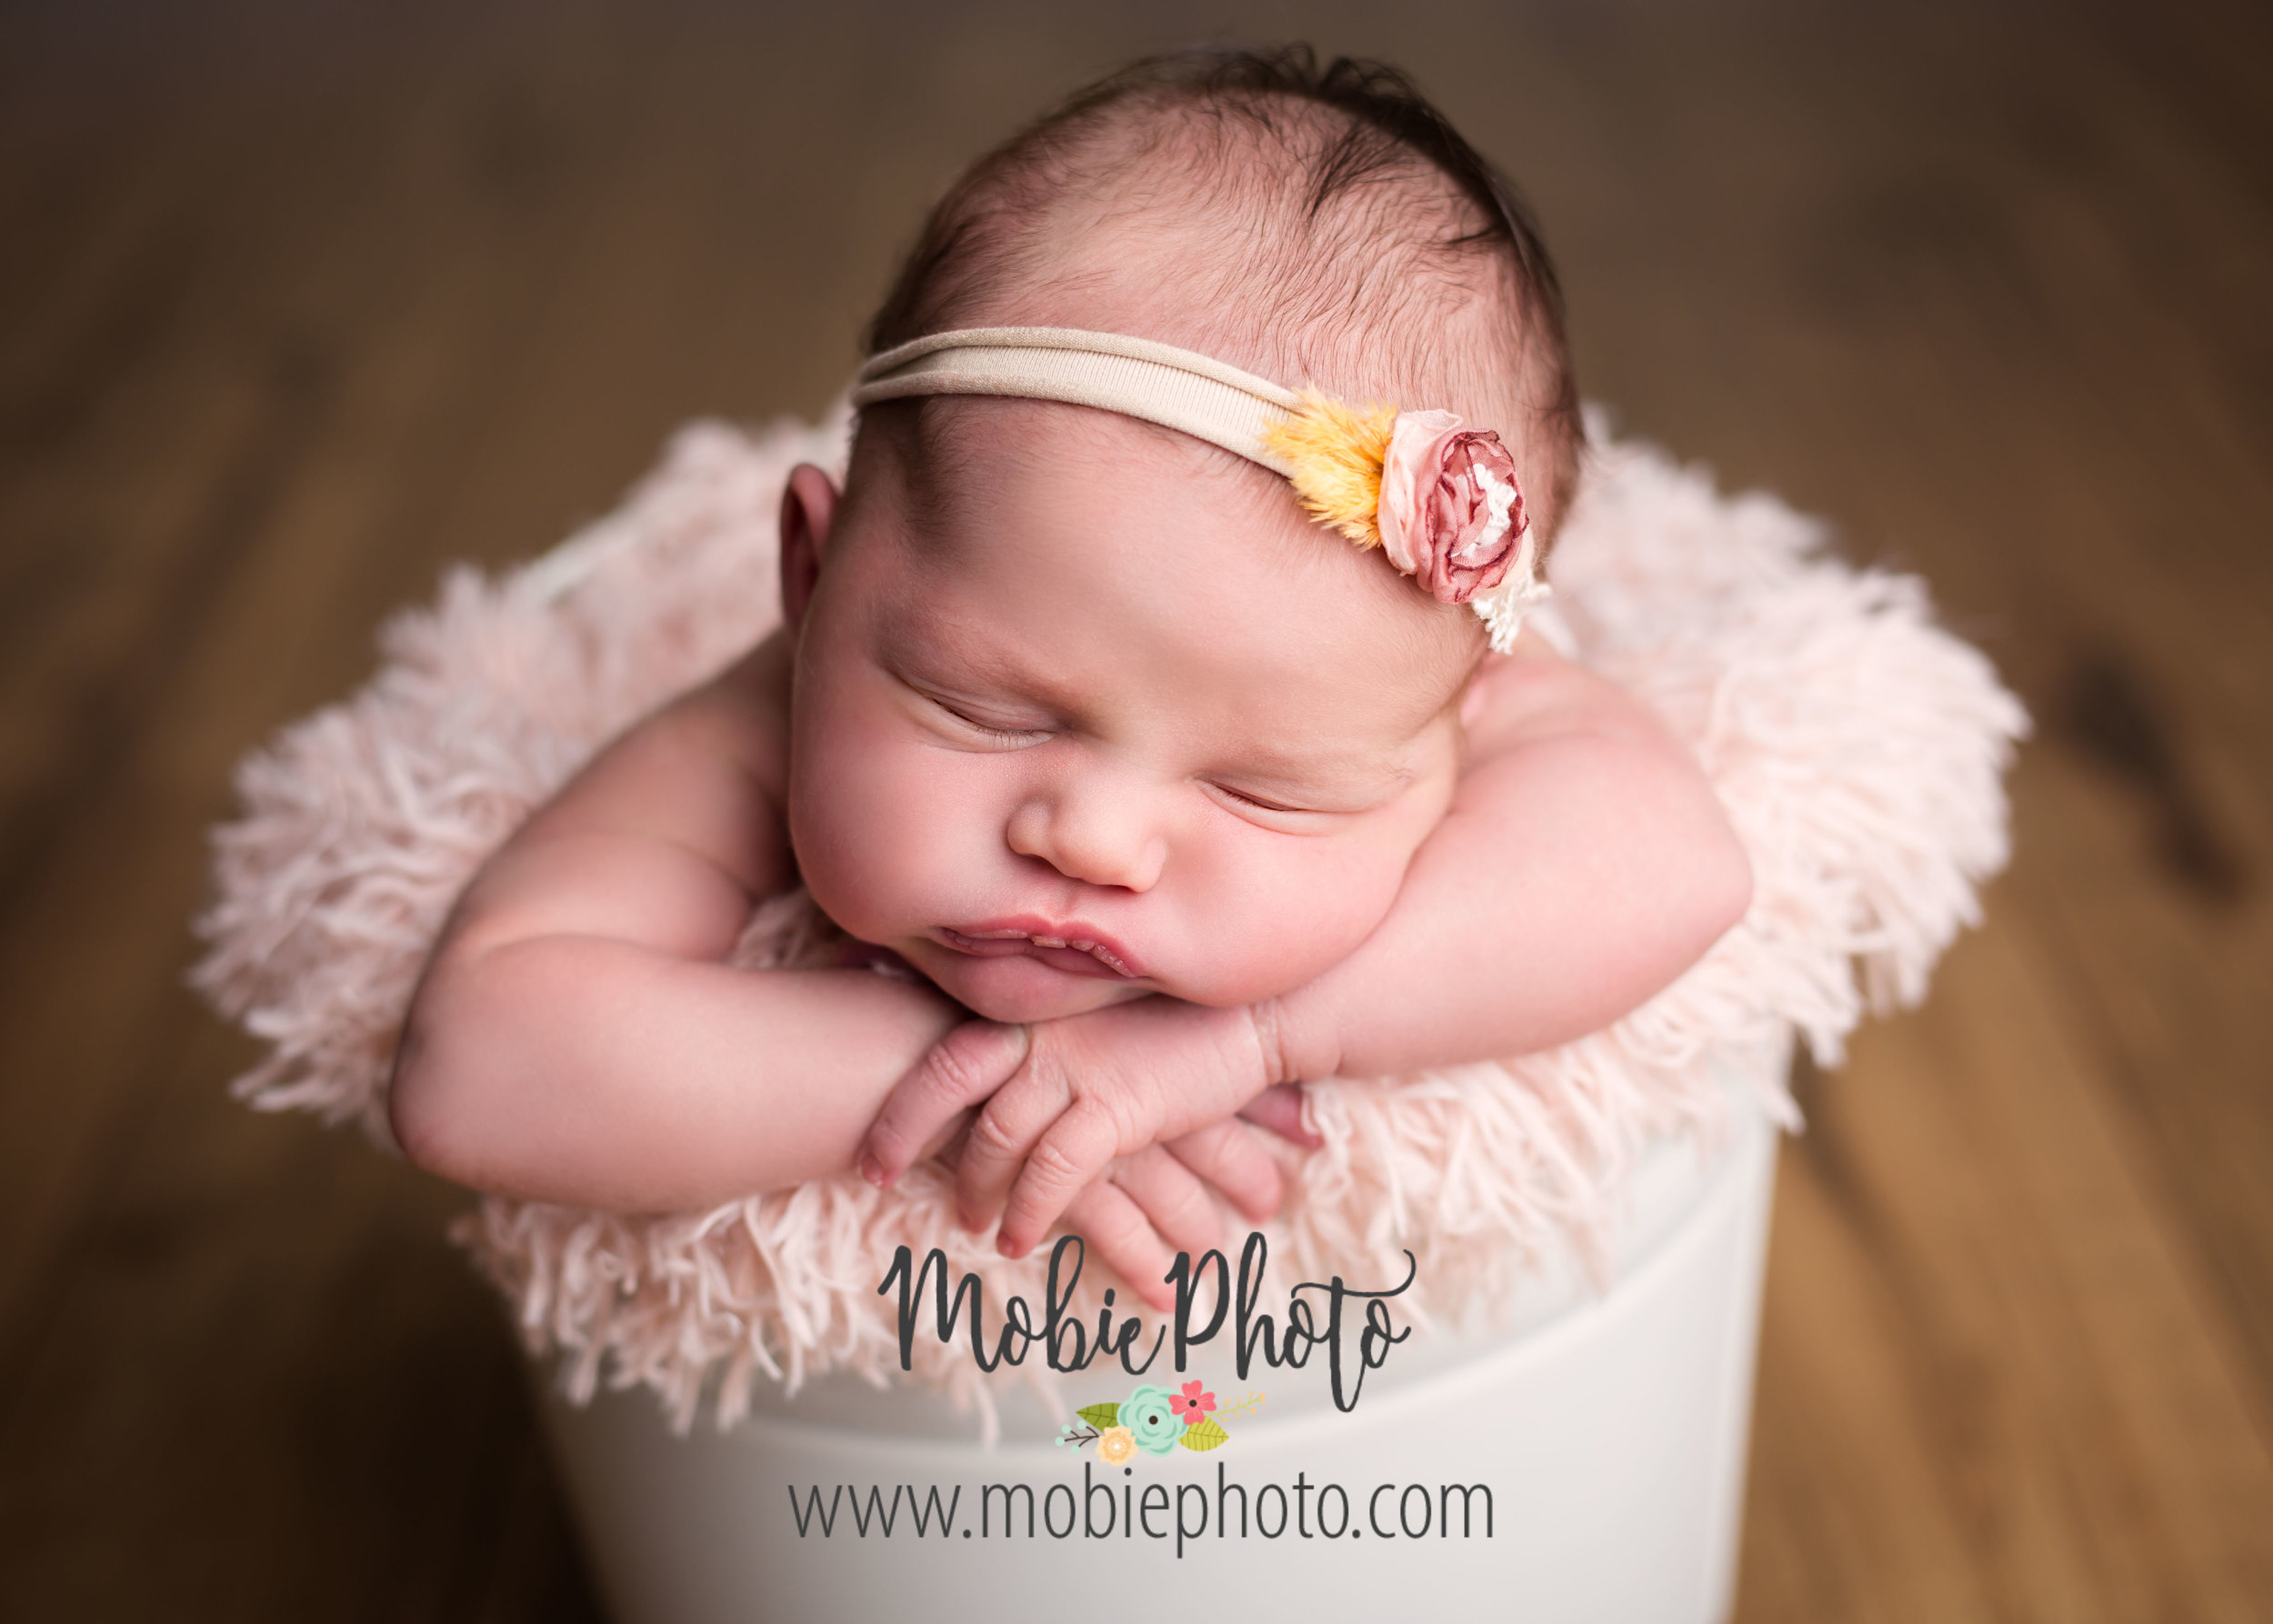 Utah Newborn Photographer - Mobie Photo